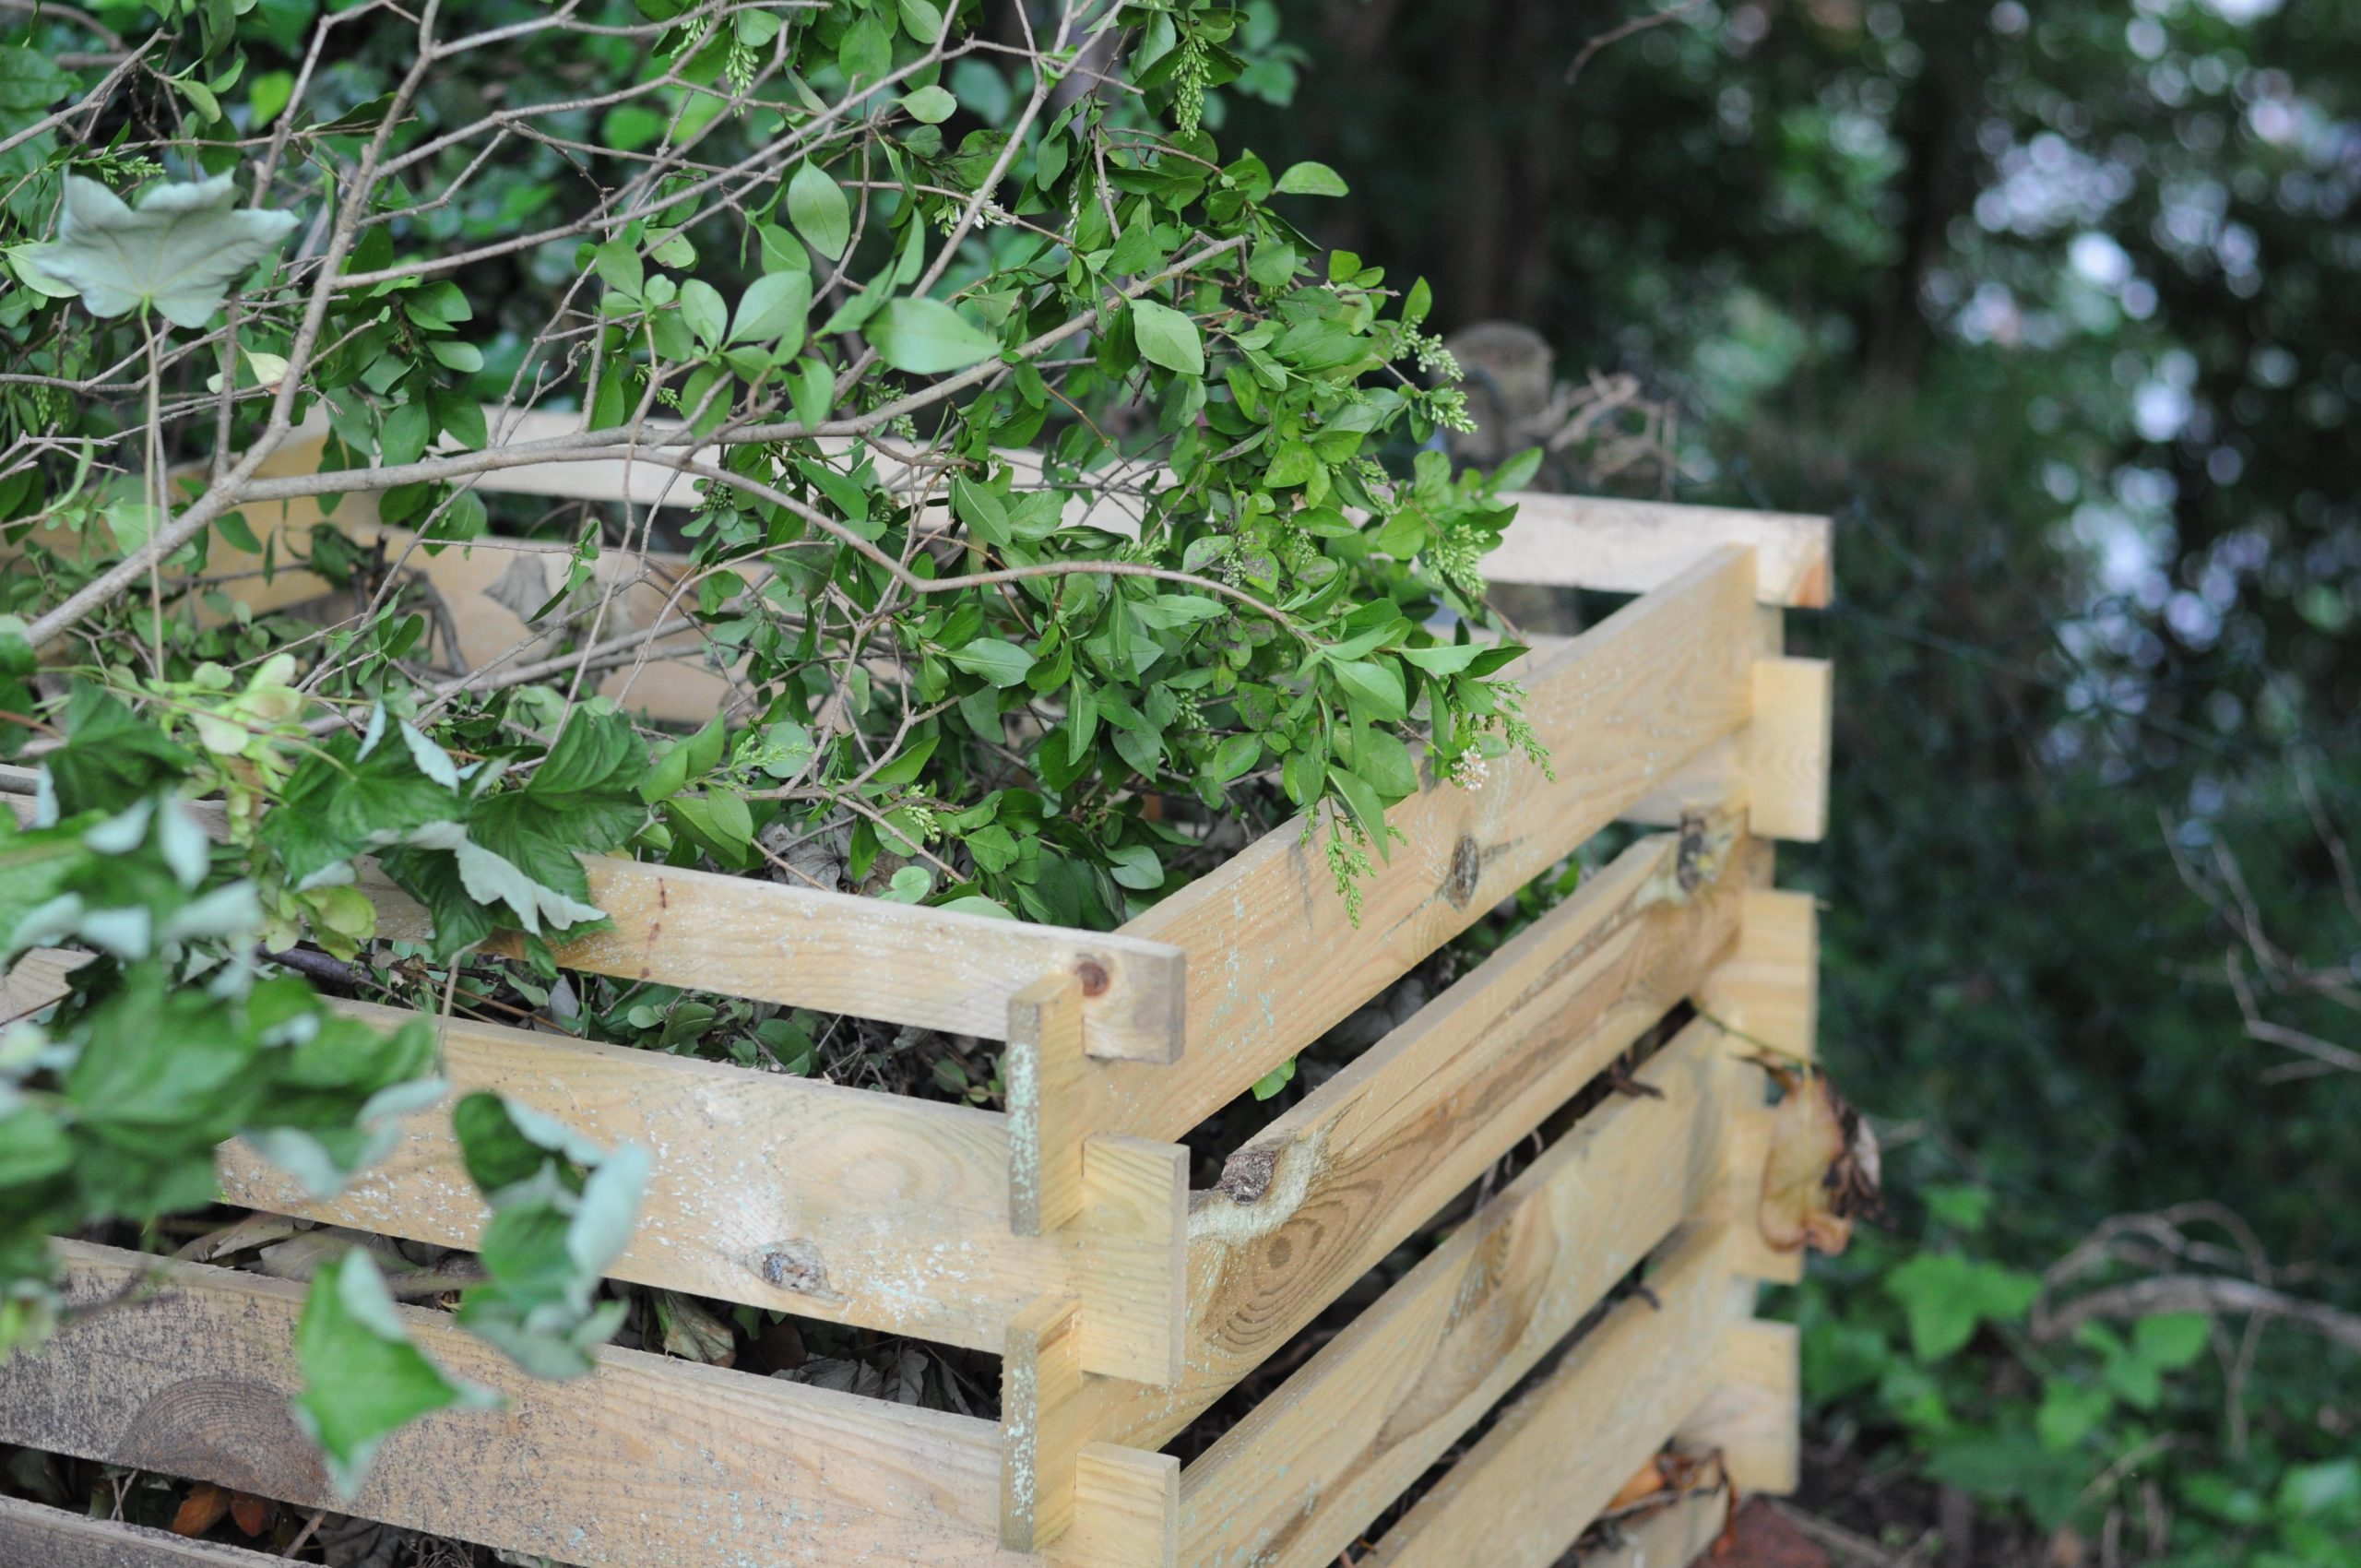 Picture showing garden waste in a wooden composter